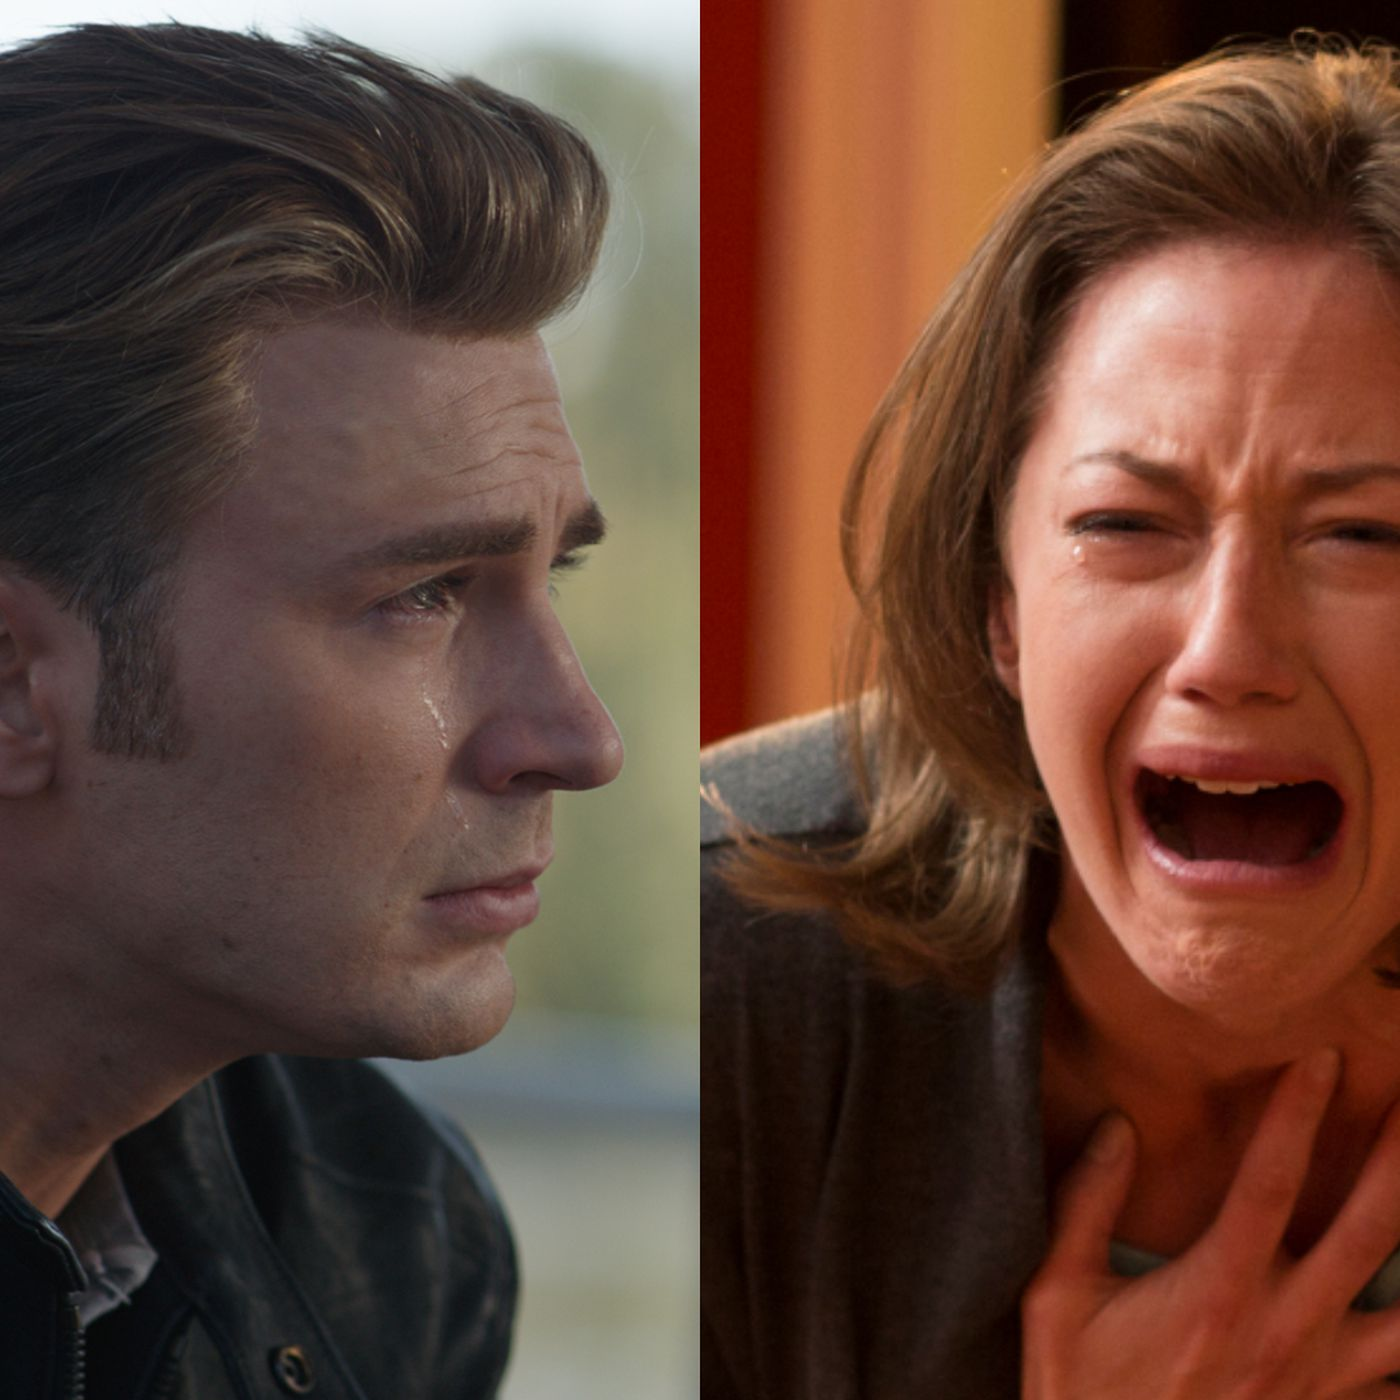 Avengers Endgame Understands Grief But Only Up To A Point